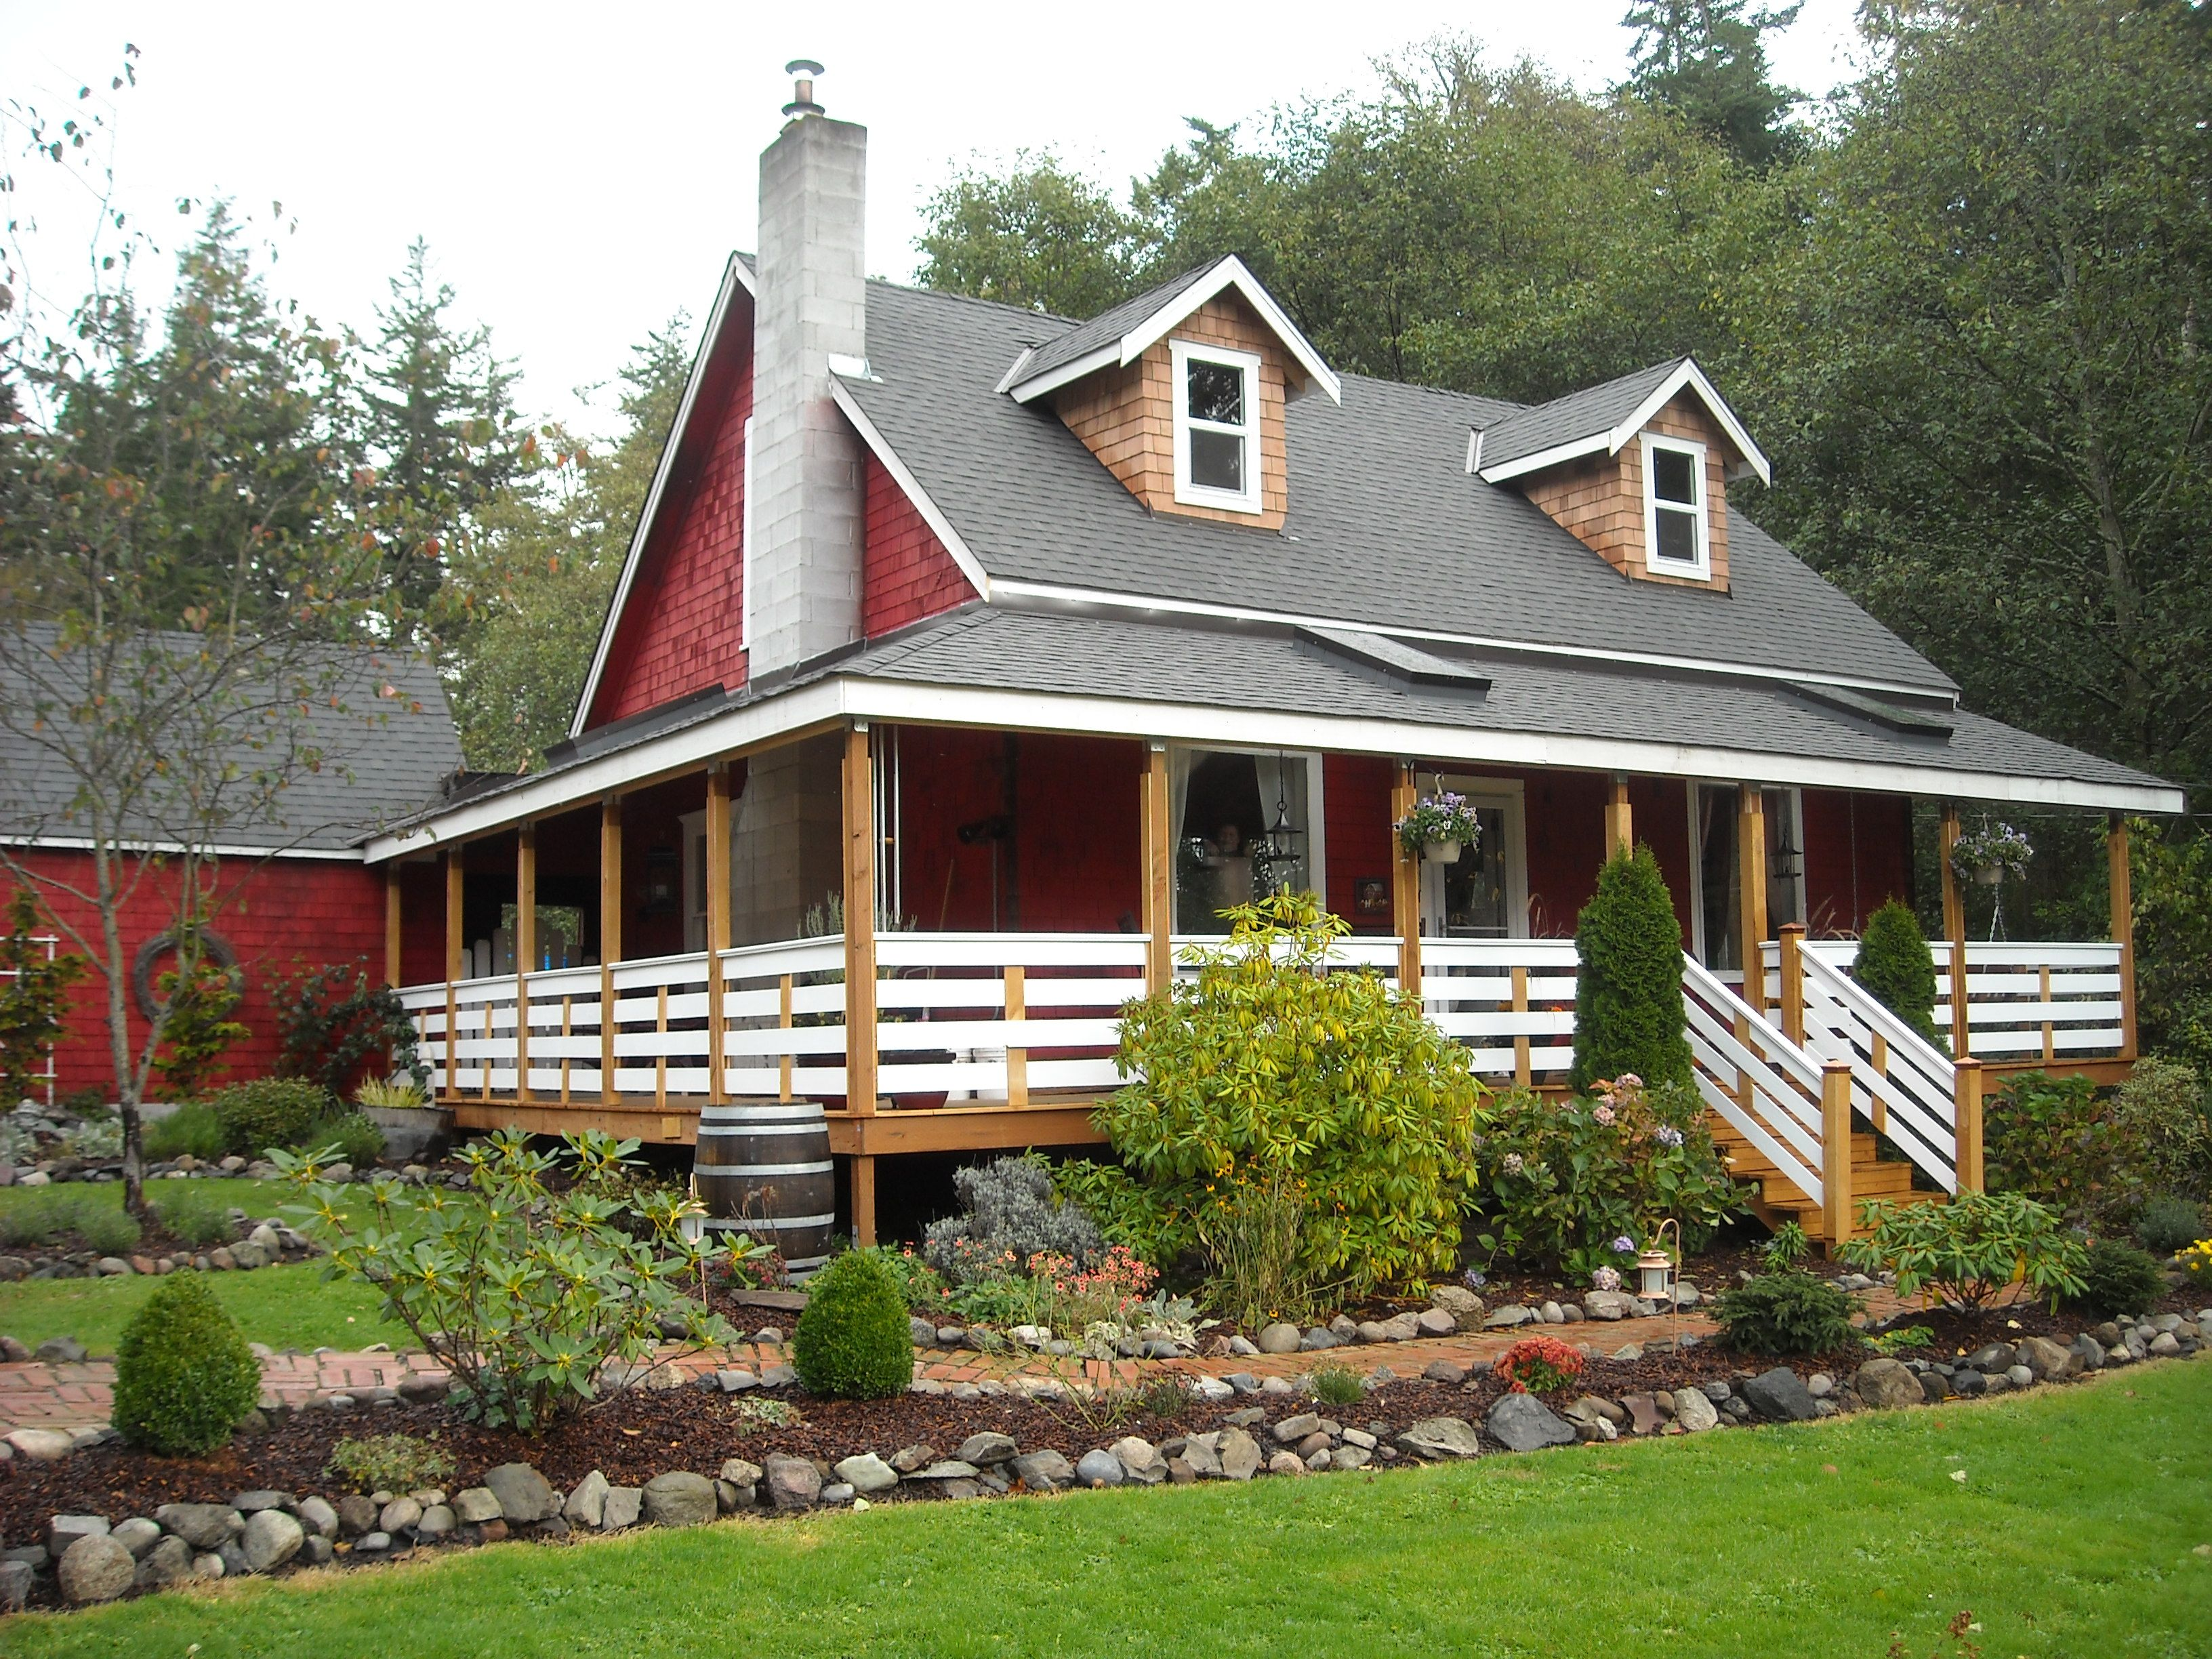 my little red farm house on Whidbey Island Washington